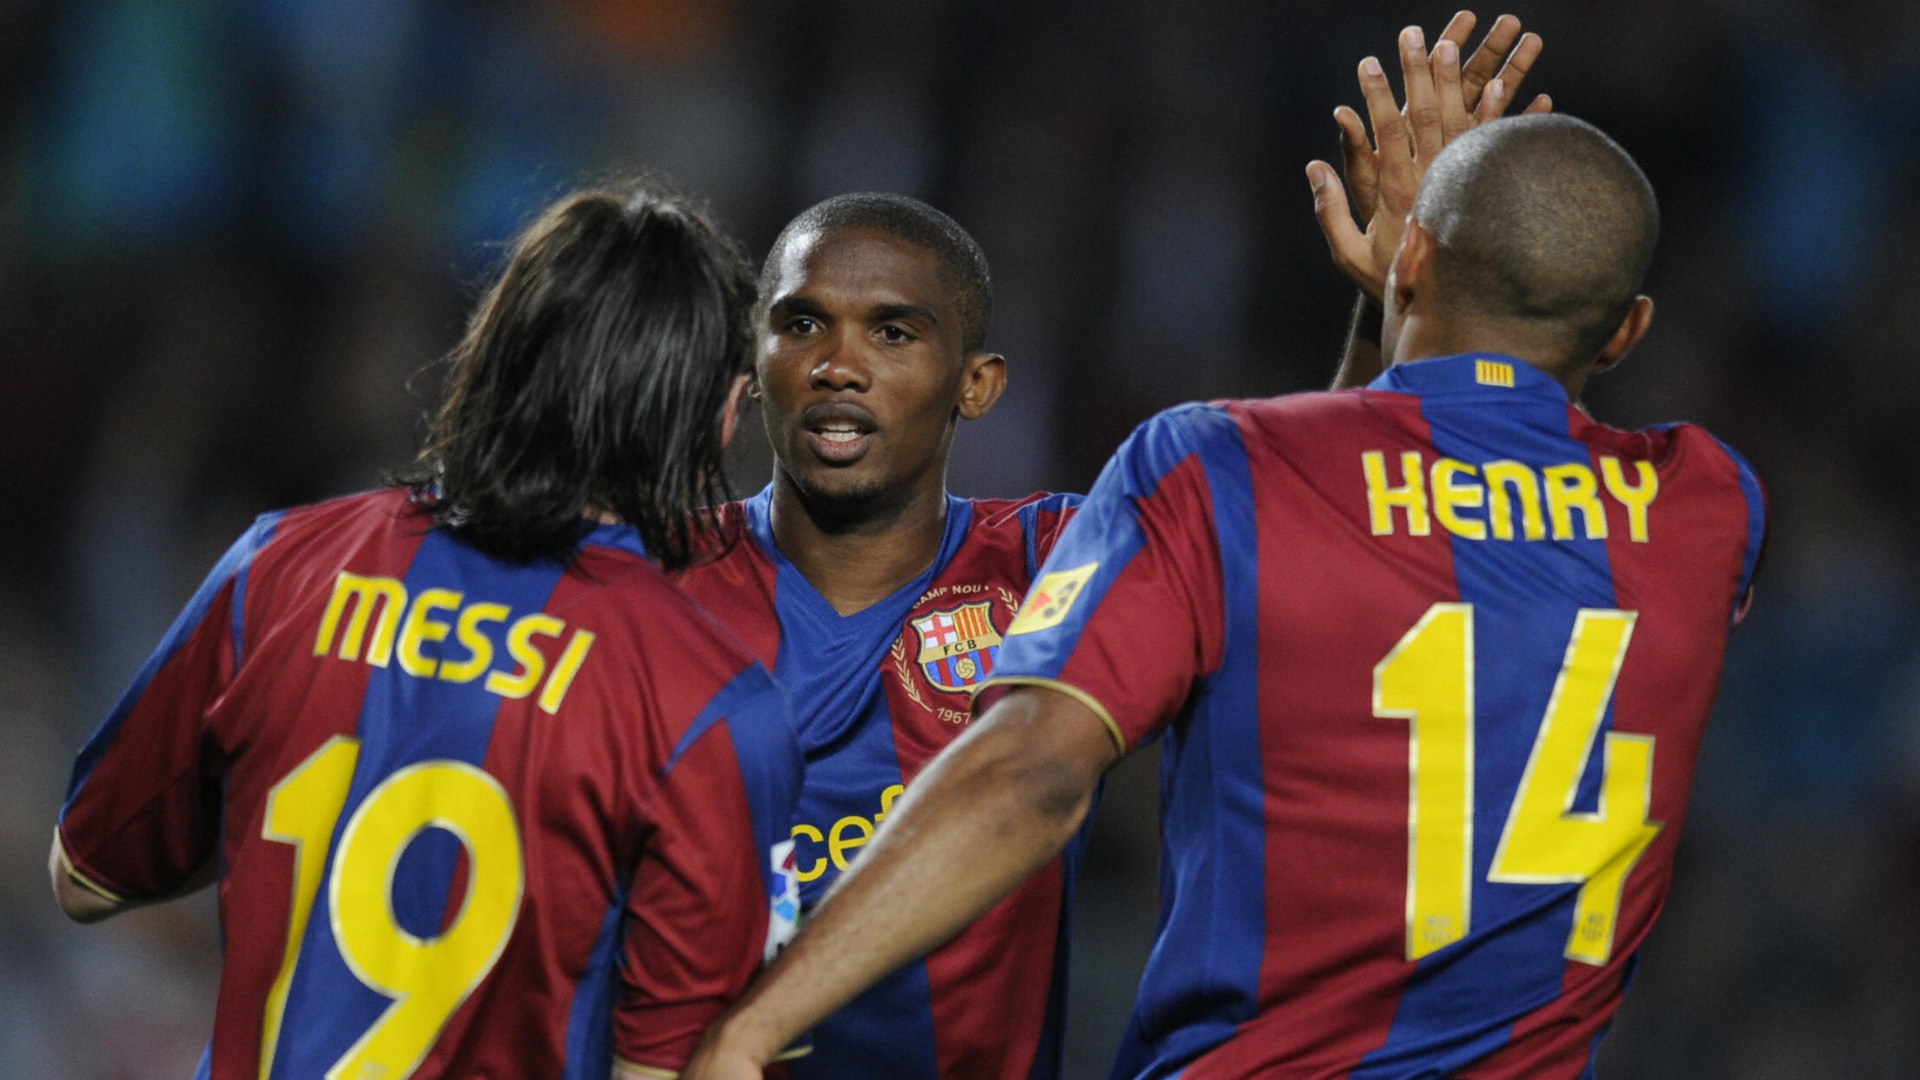 100 — Lionel Messi, Samuel Eto'o, Thierry Henry (2008/09)